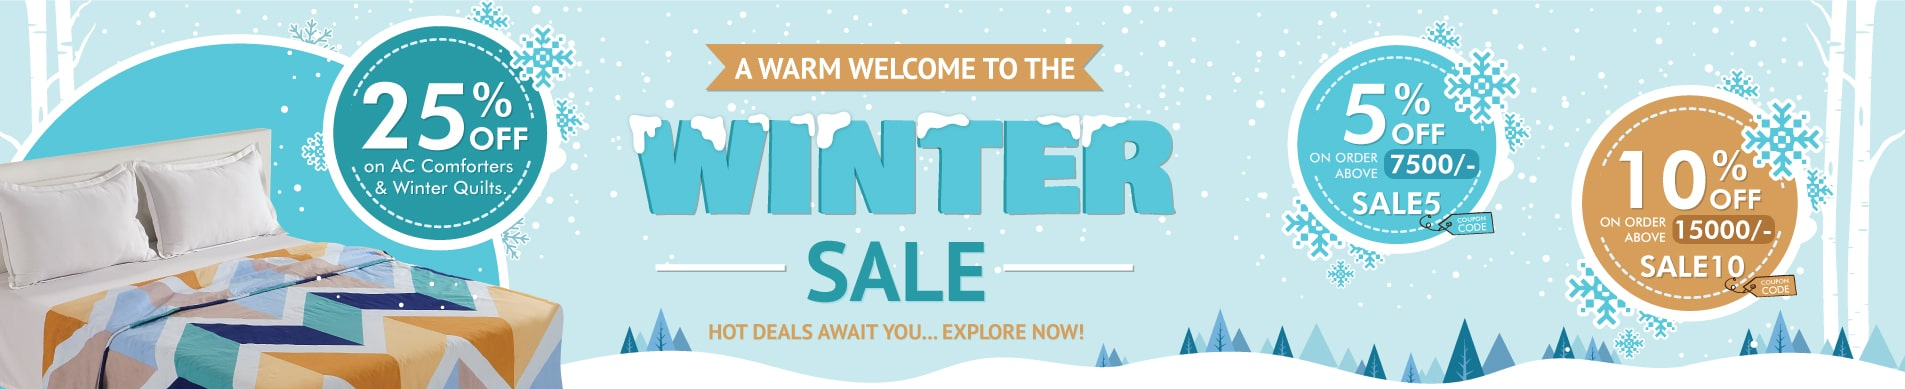 Swayam India - Winter Season Sale - 25% OFF